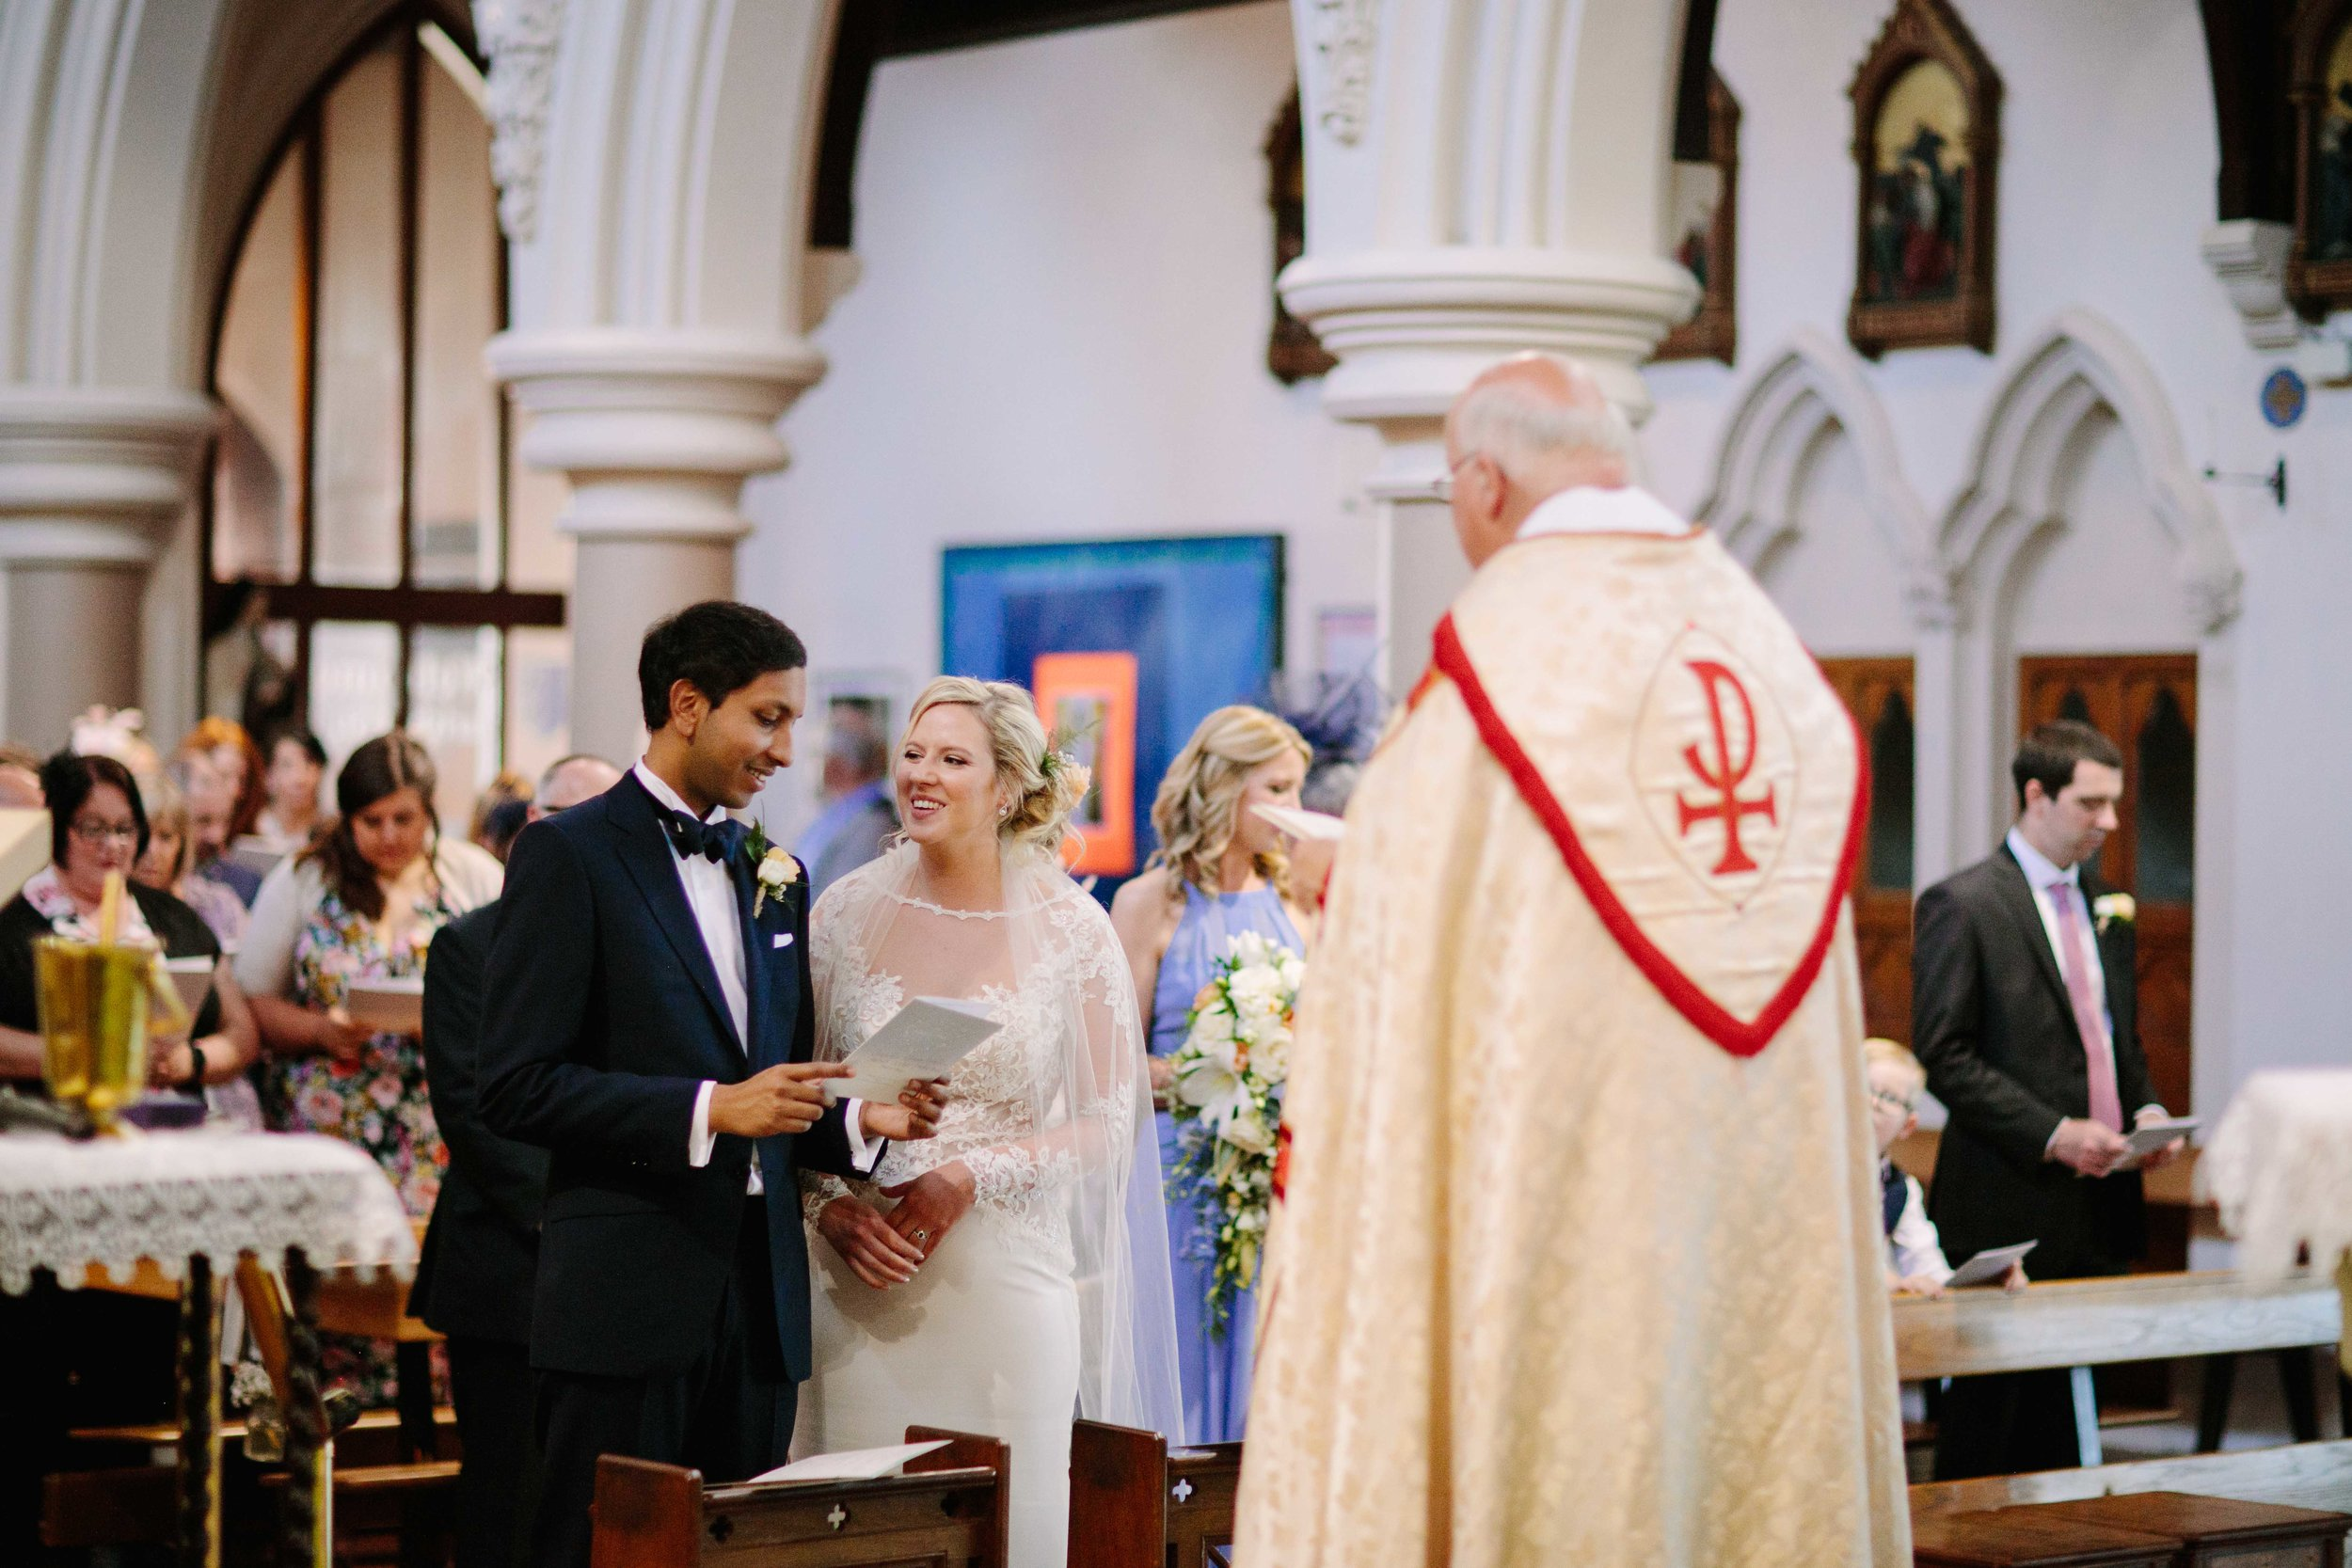 Jen & Satish Marleybrook House Wedding Photography -27.jpg